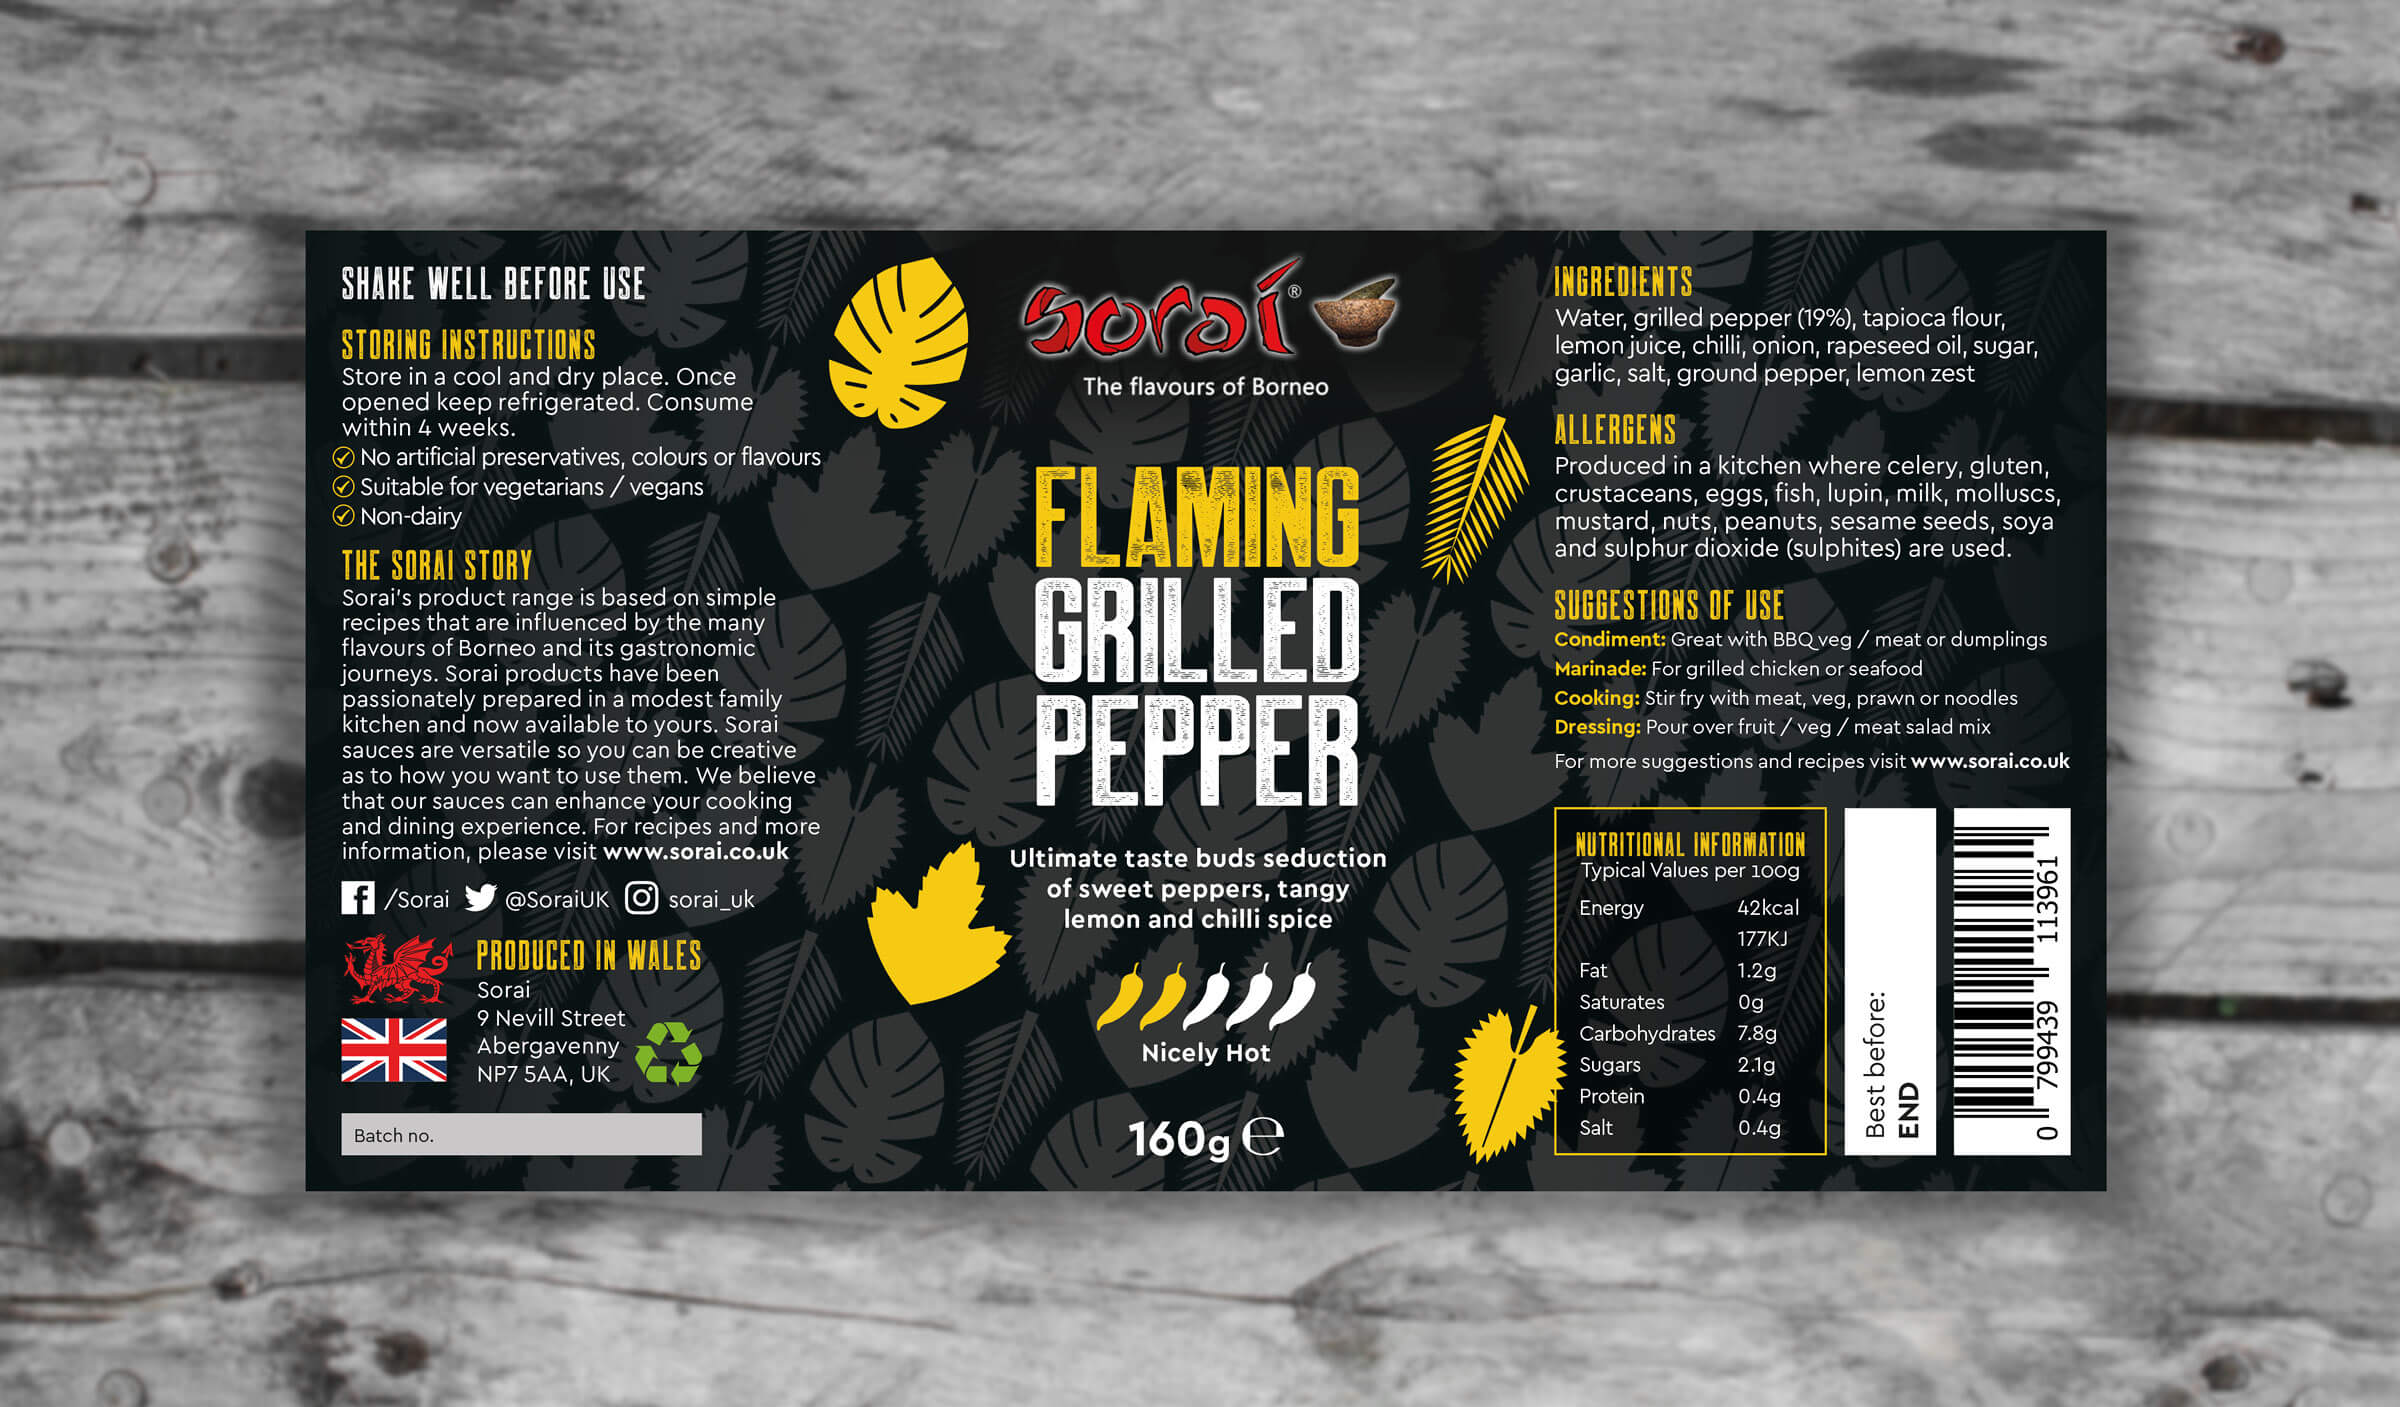 Hot pepper sauce full label design